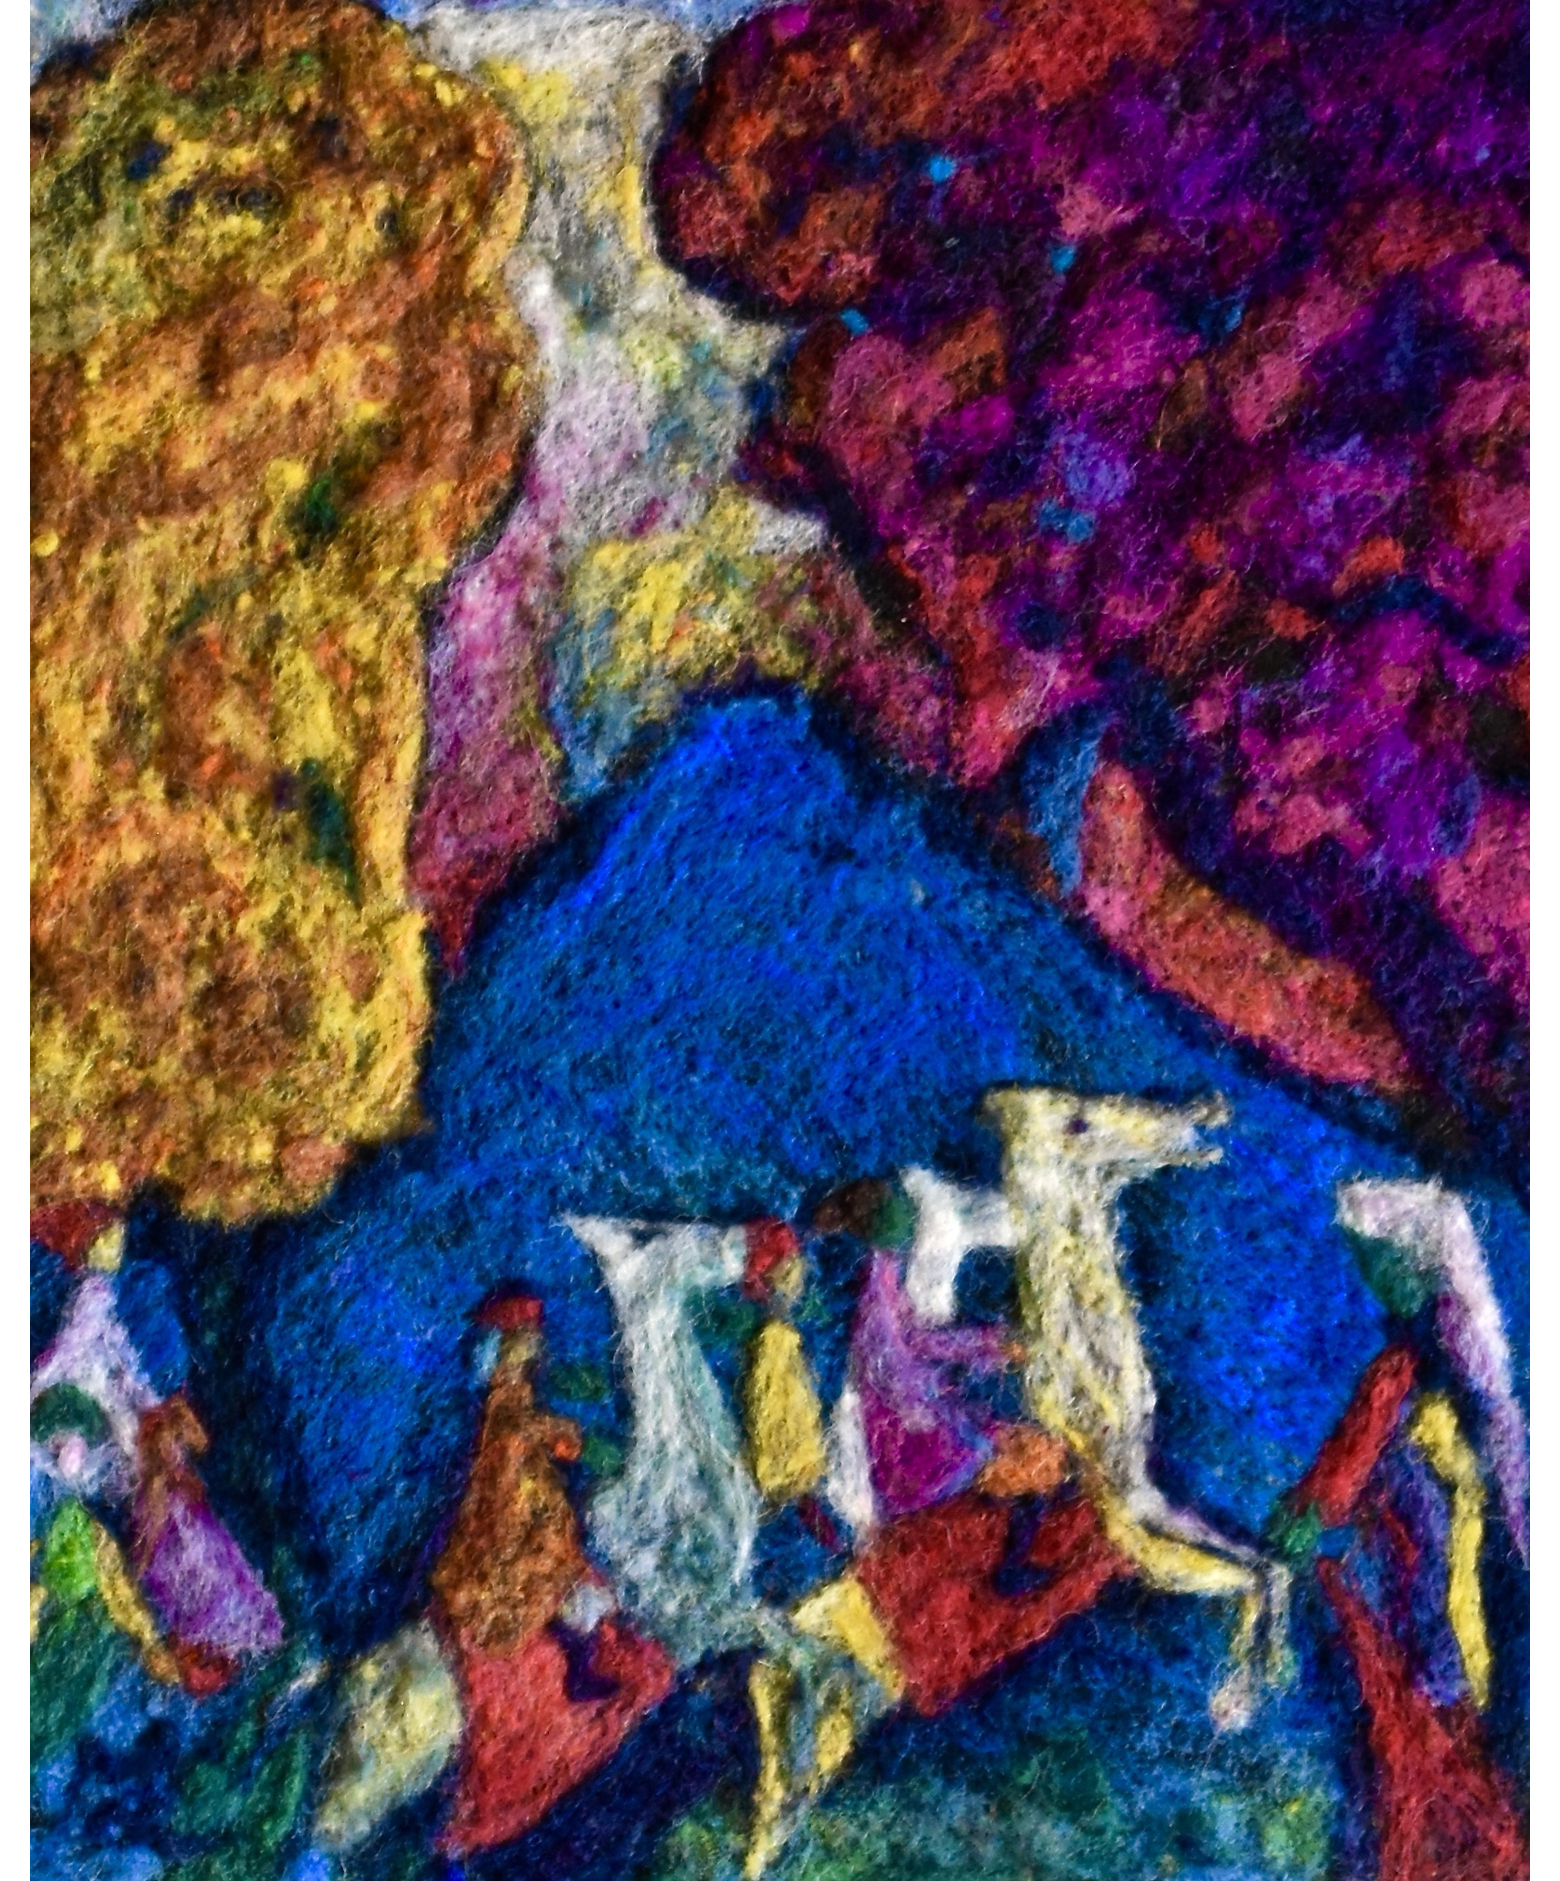 49_1_Mary_Lor_After Kandinsky's Blue Mountain copy.jpg